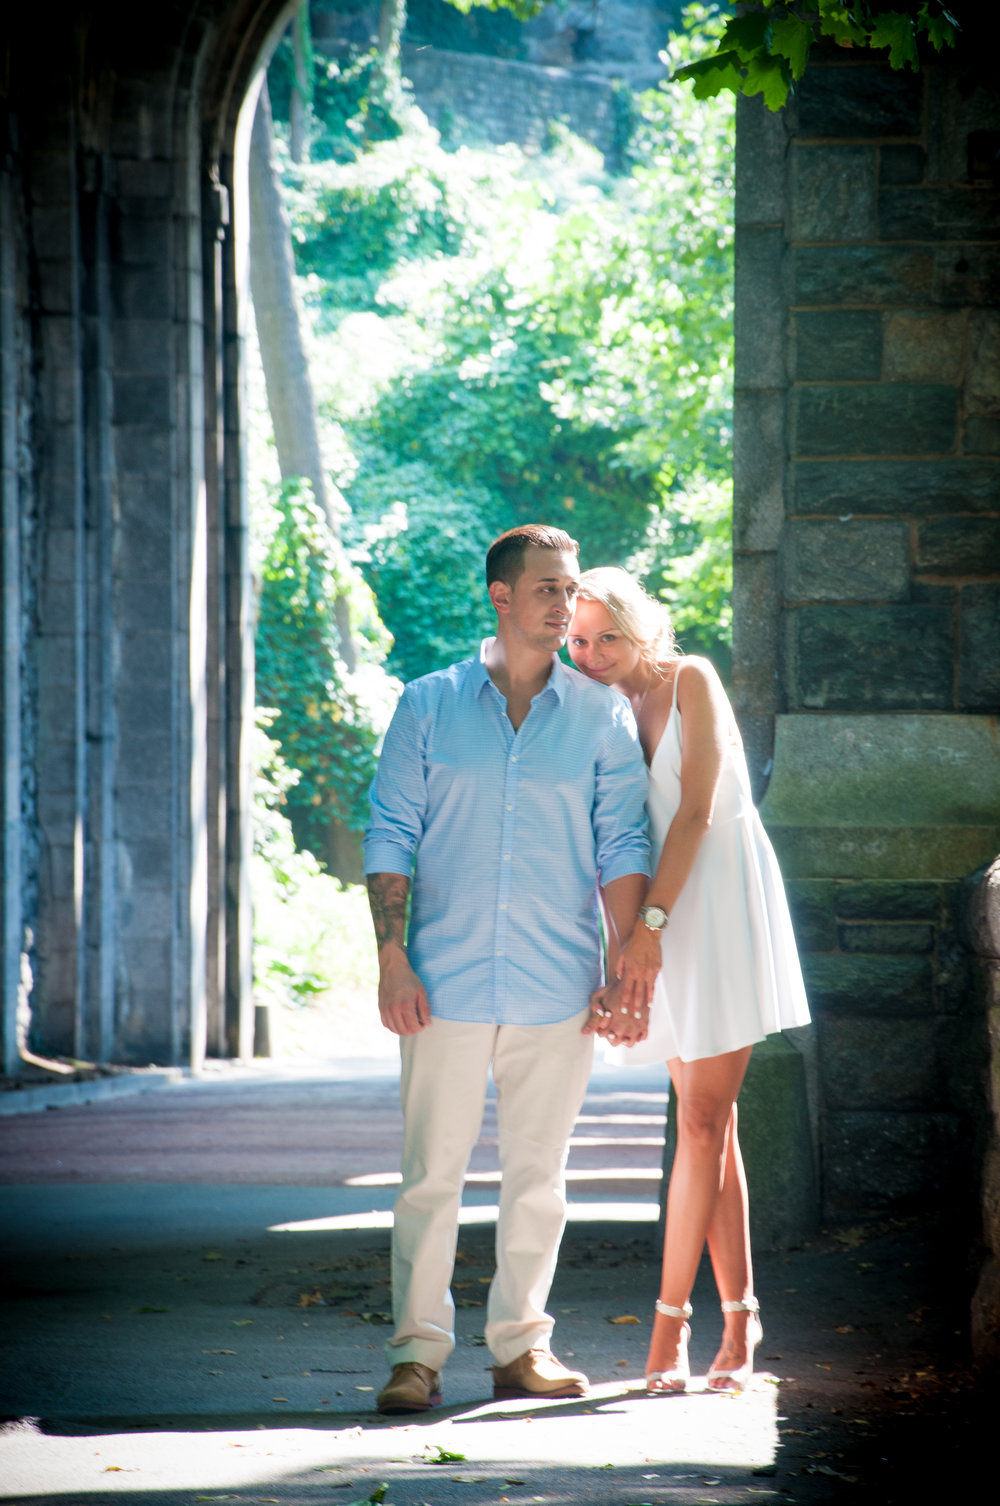 CArrieWestonStudios_NY_Portrait_Wedding_Photography_Northport_JoeandSarah-19.jpg